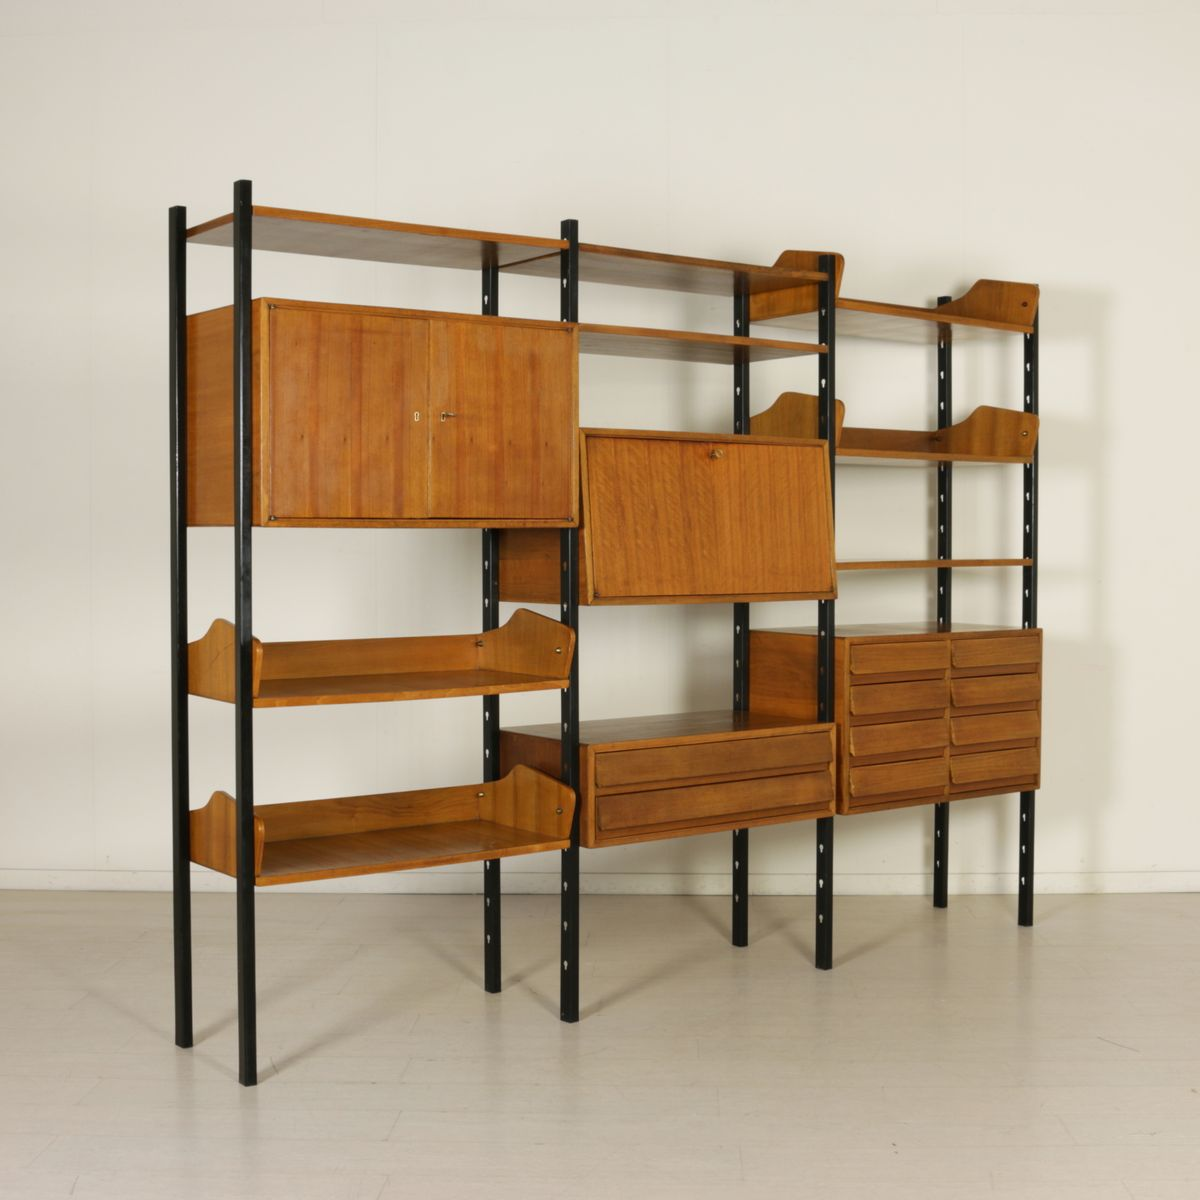 vintage b cherregal mit verstellbaren elementen aus metall. Black Bedroom Furniture Sets. Home Design Ideas